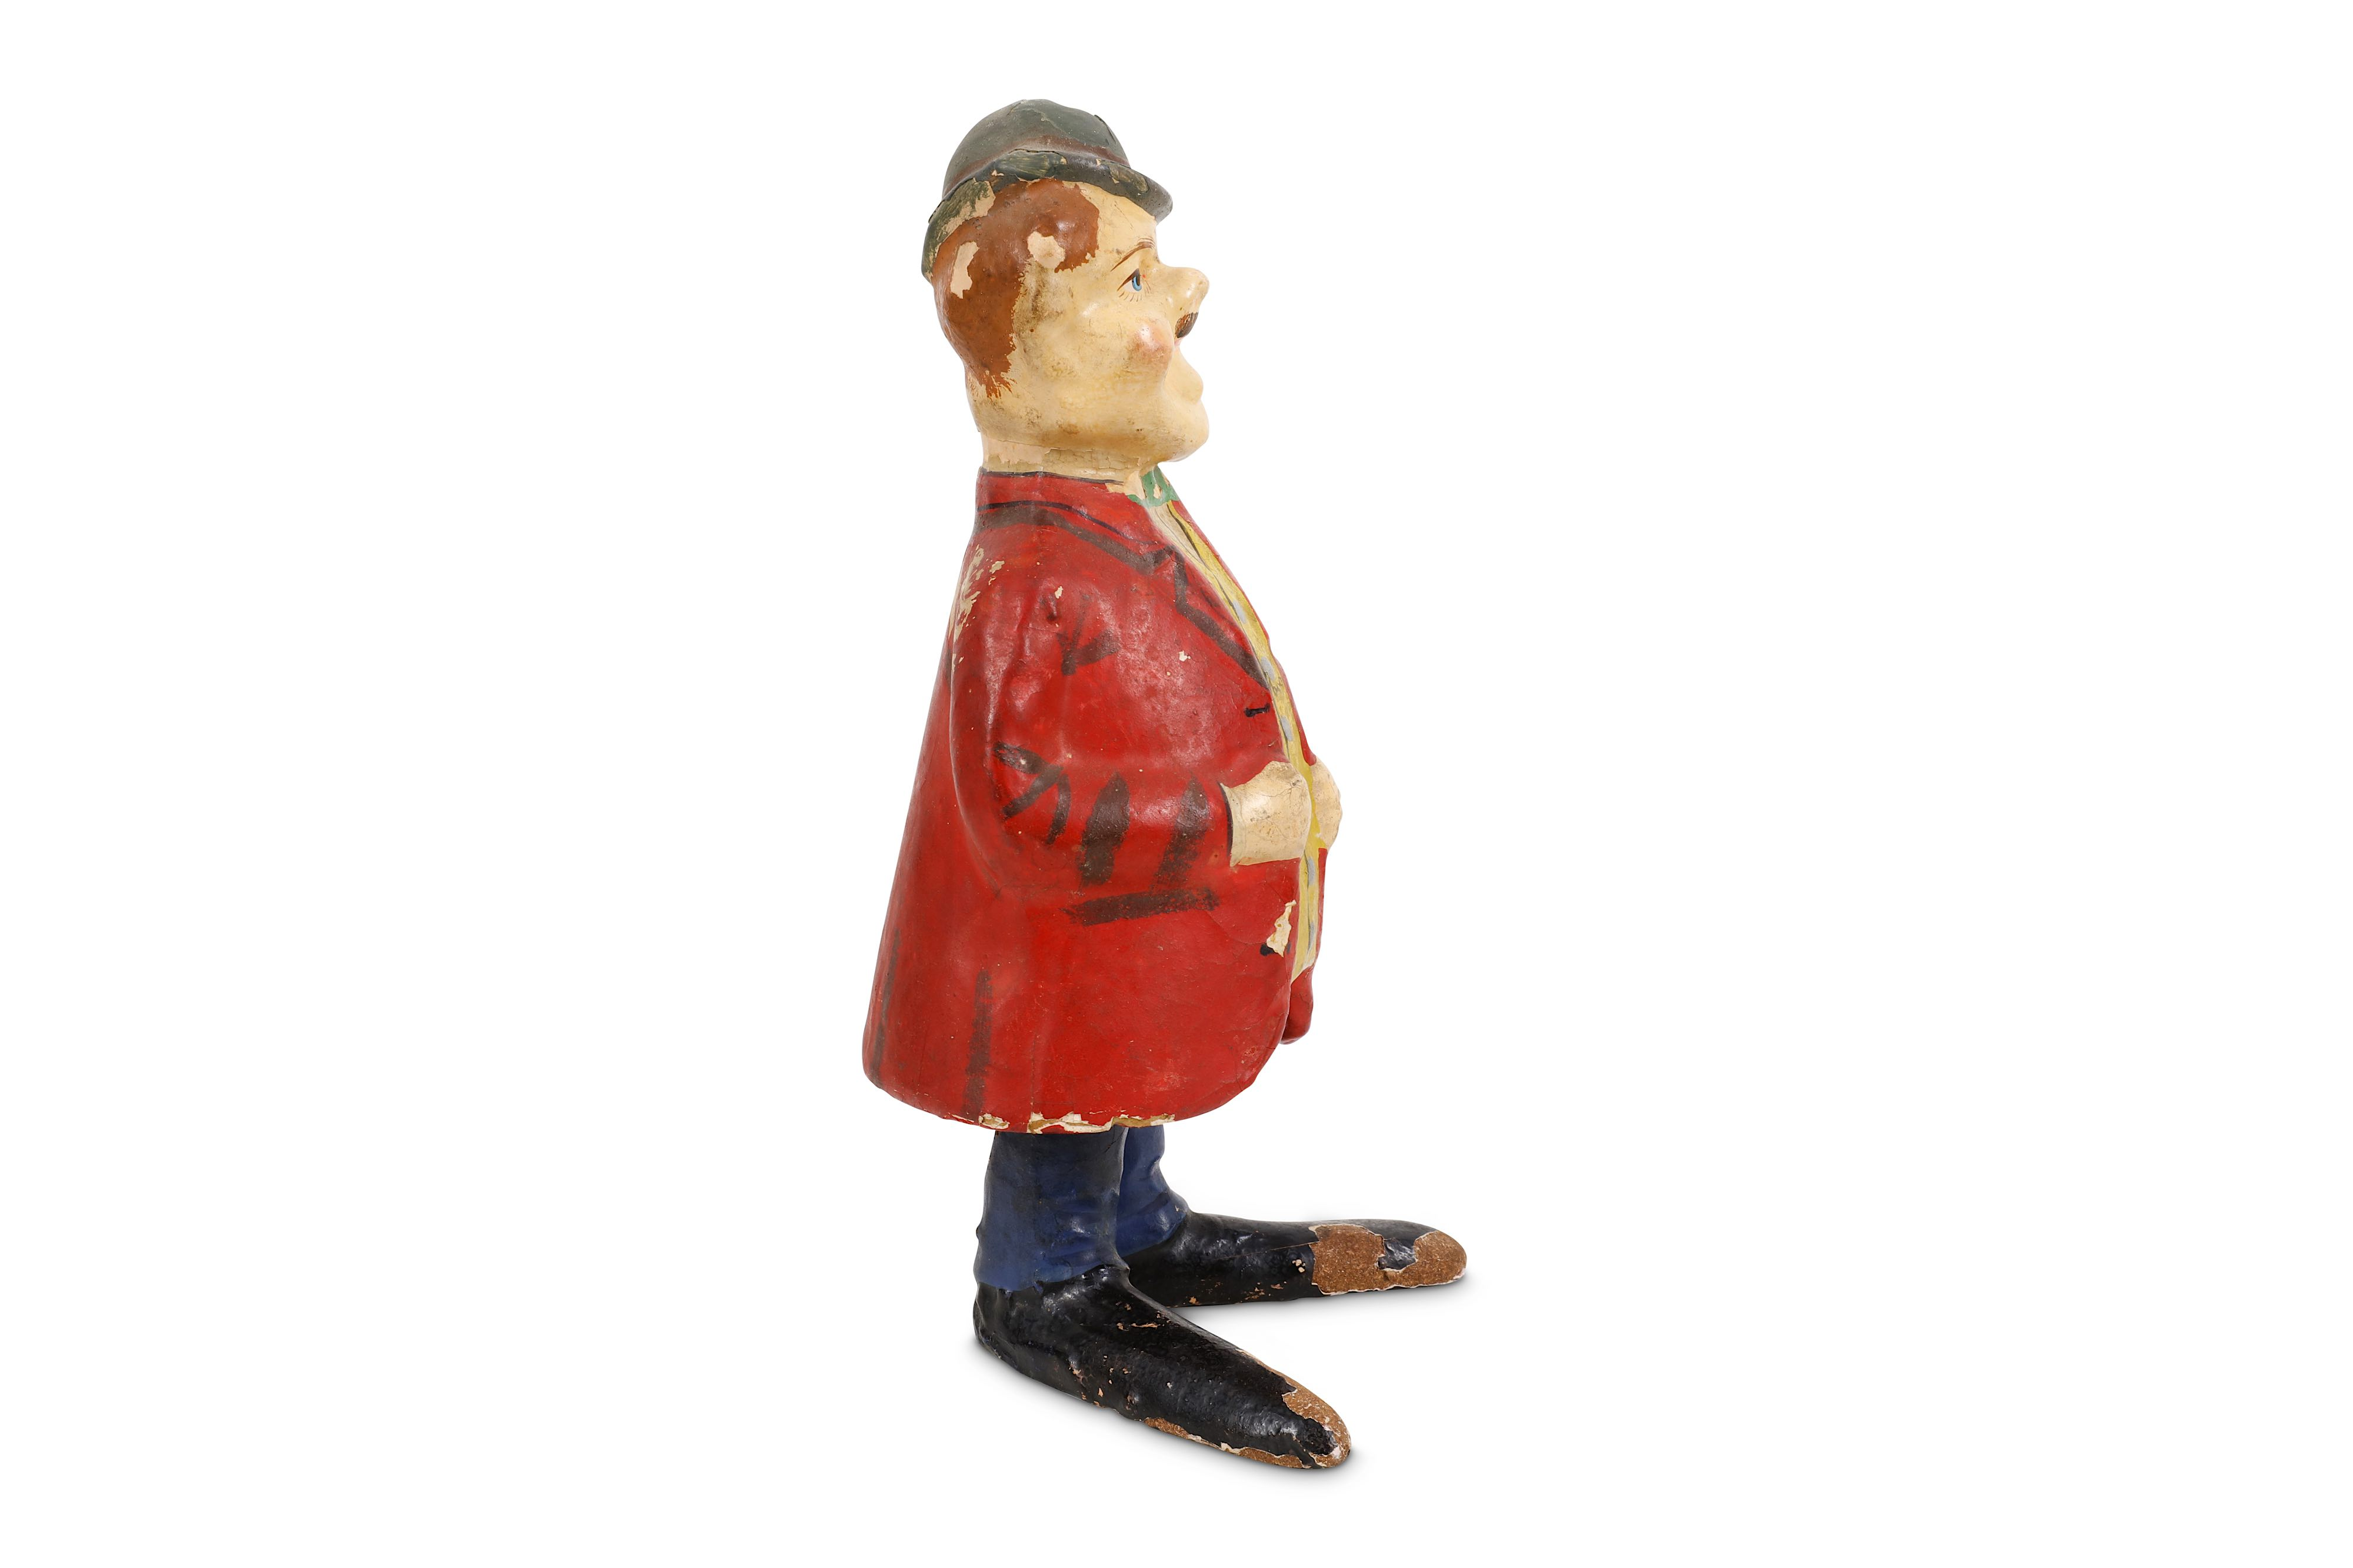 EARLY GERMAN PAPIER MACHER SPRING LOADED FIGURE DEPICTING OLIVER HARDY - Image 2 of 3